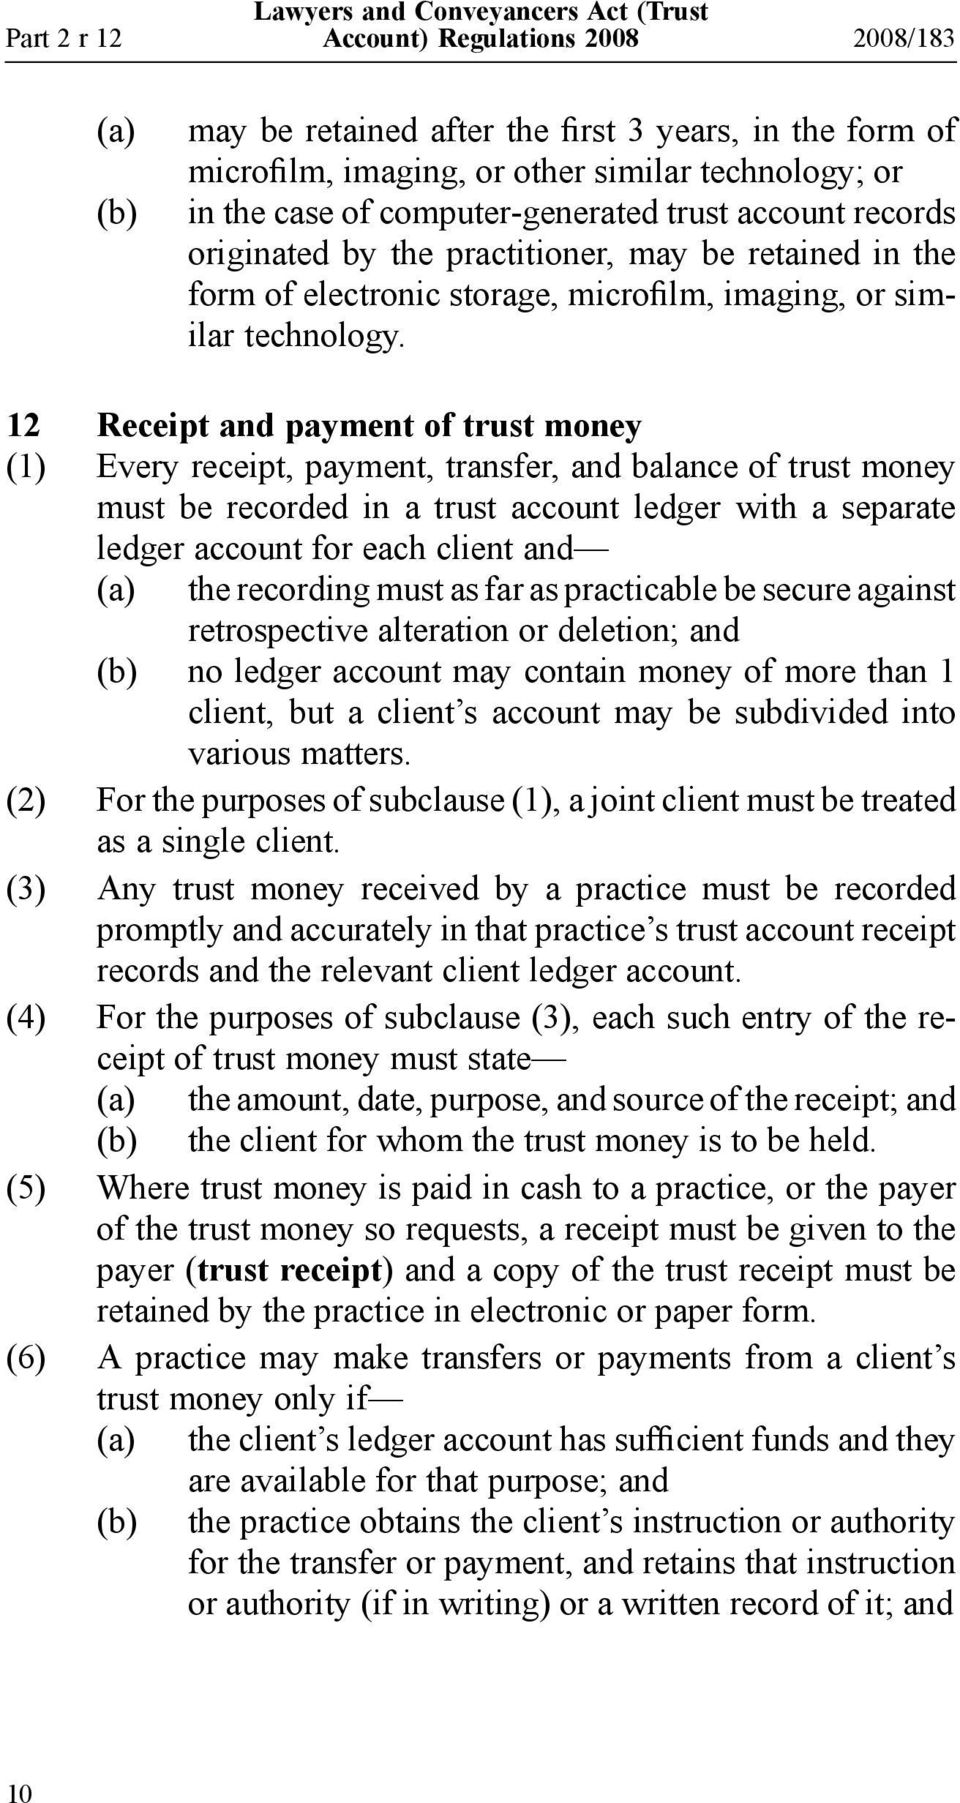 12 Receipt and payment of trust money (1) Every receipt, payment, transfer, and balance of trust money must be recorded in a trust account ledger with a separate ledger account for each client and